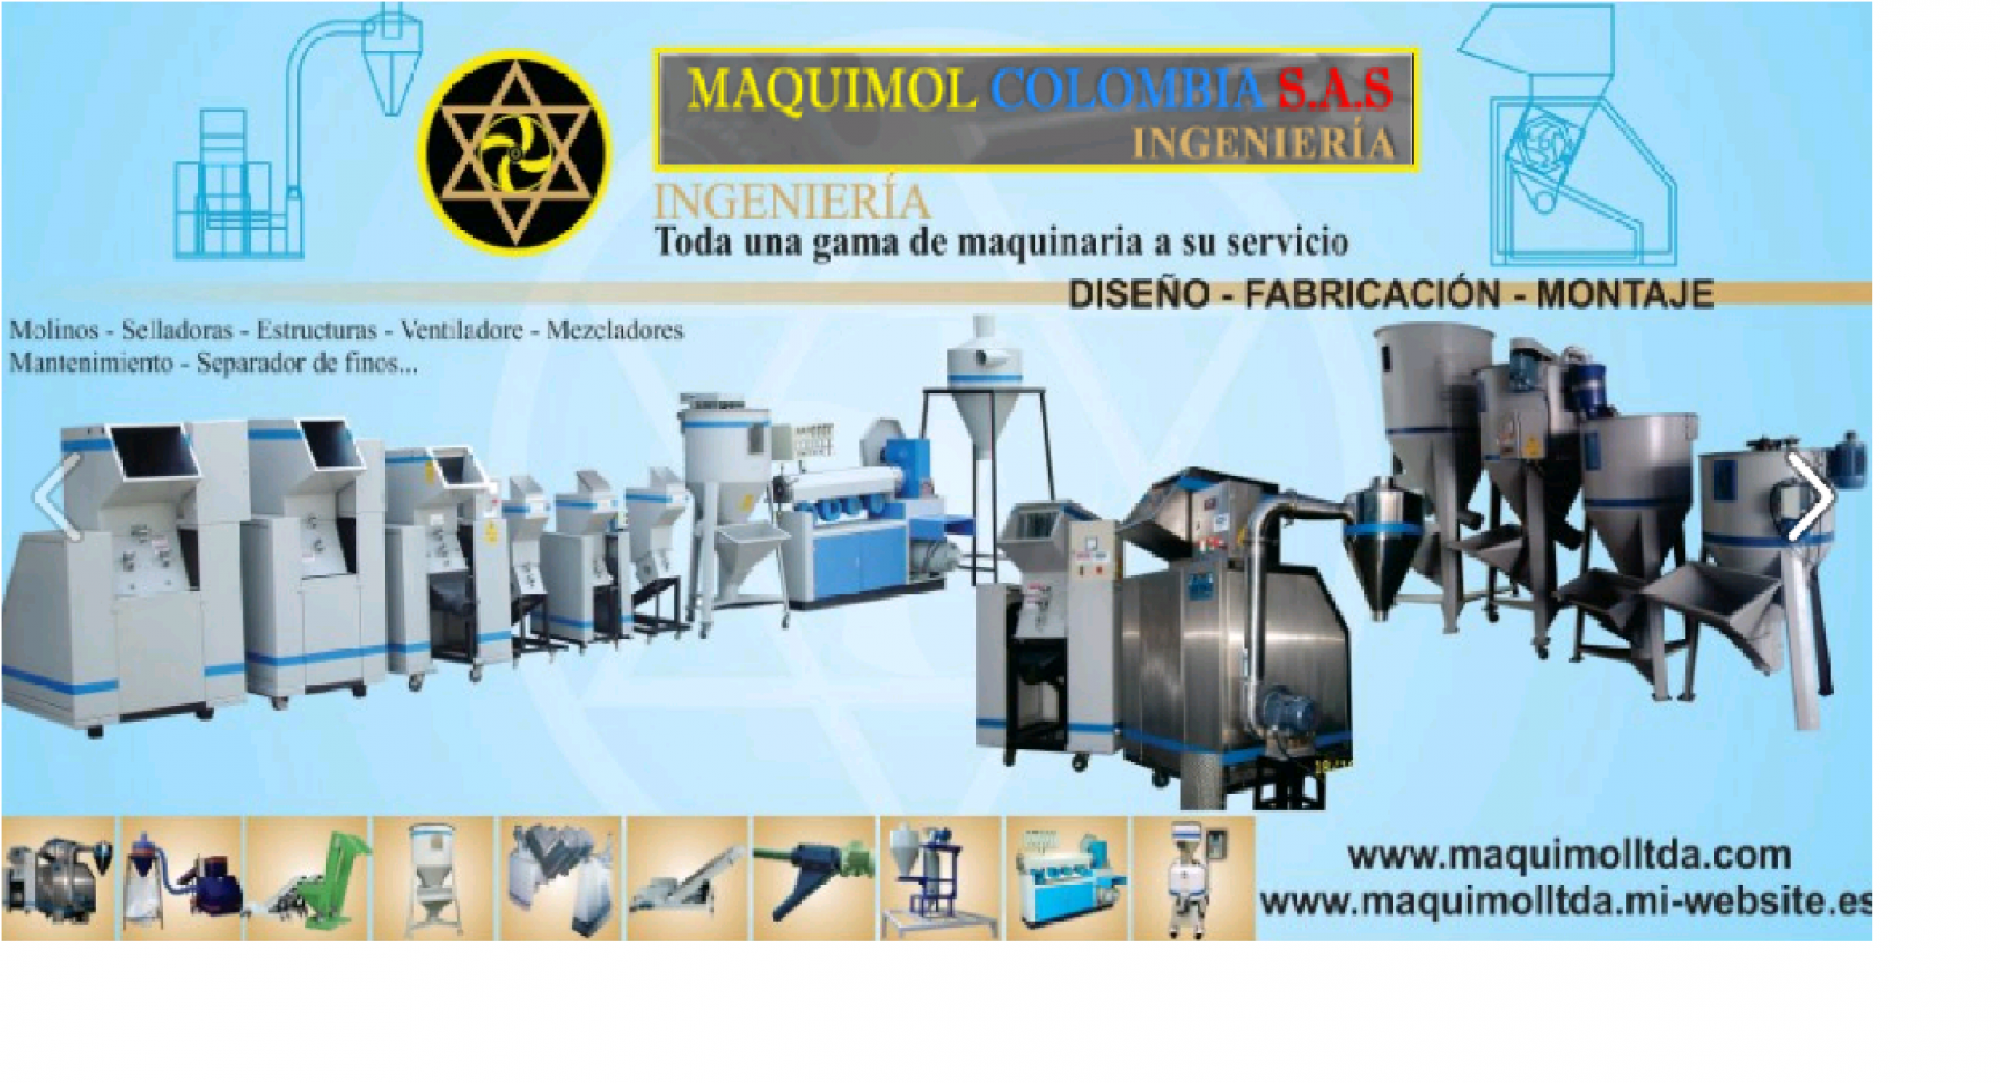 Maquimol Colombia S.A.S